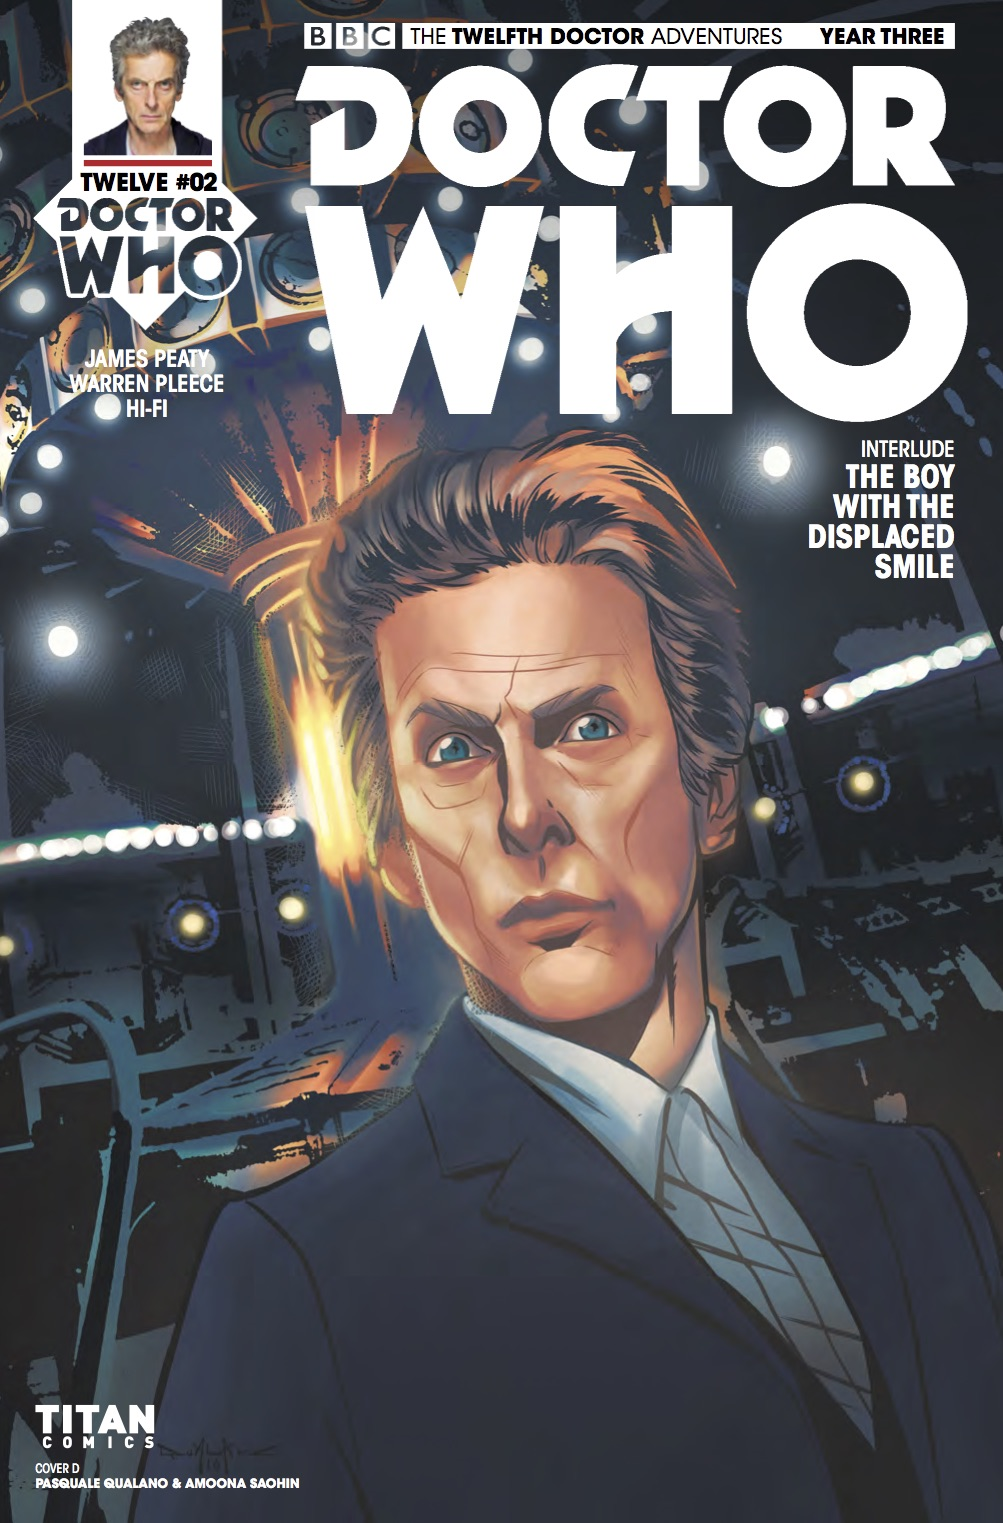 TWELFTH DOCTOR YEAR 3 #2 Cover D (Credit: Titan)